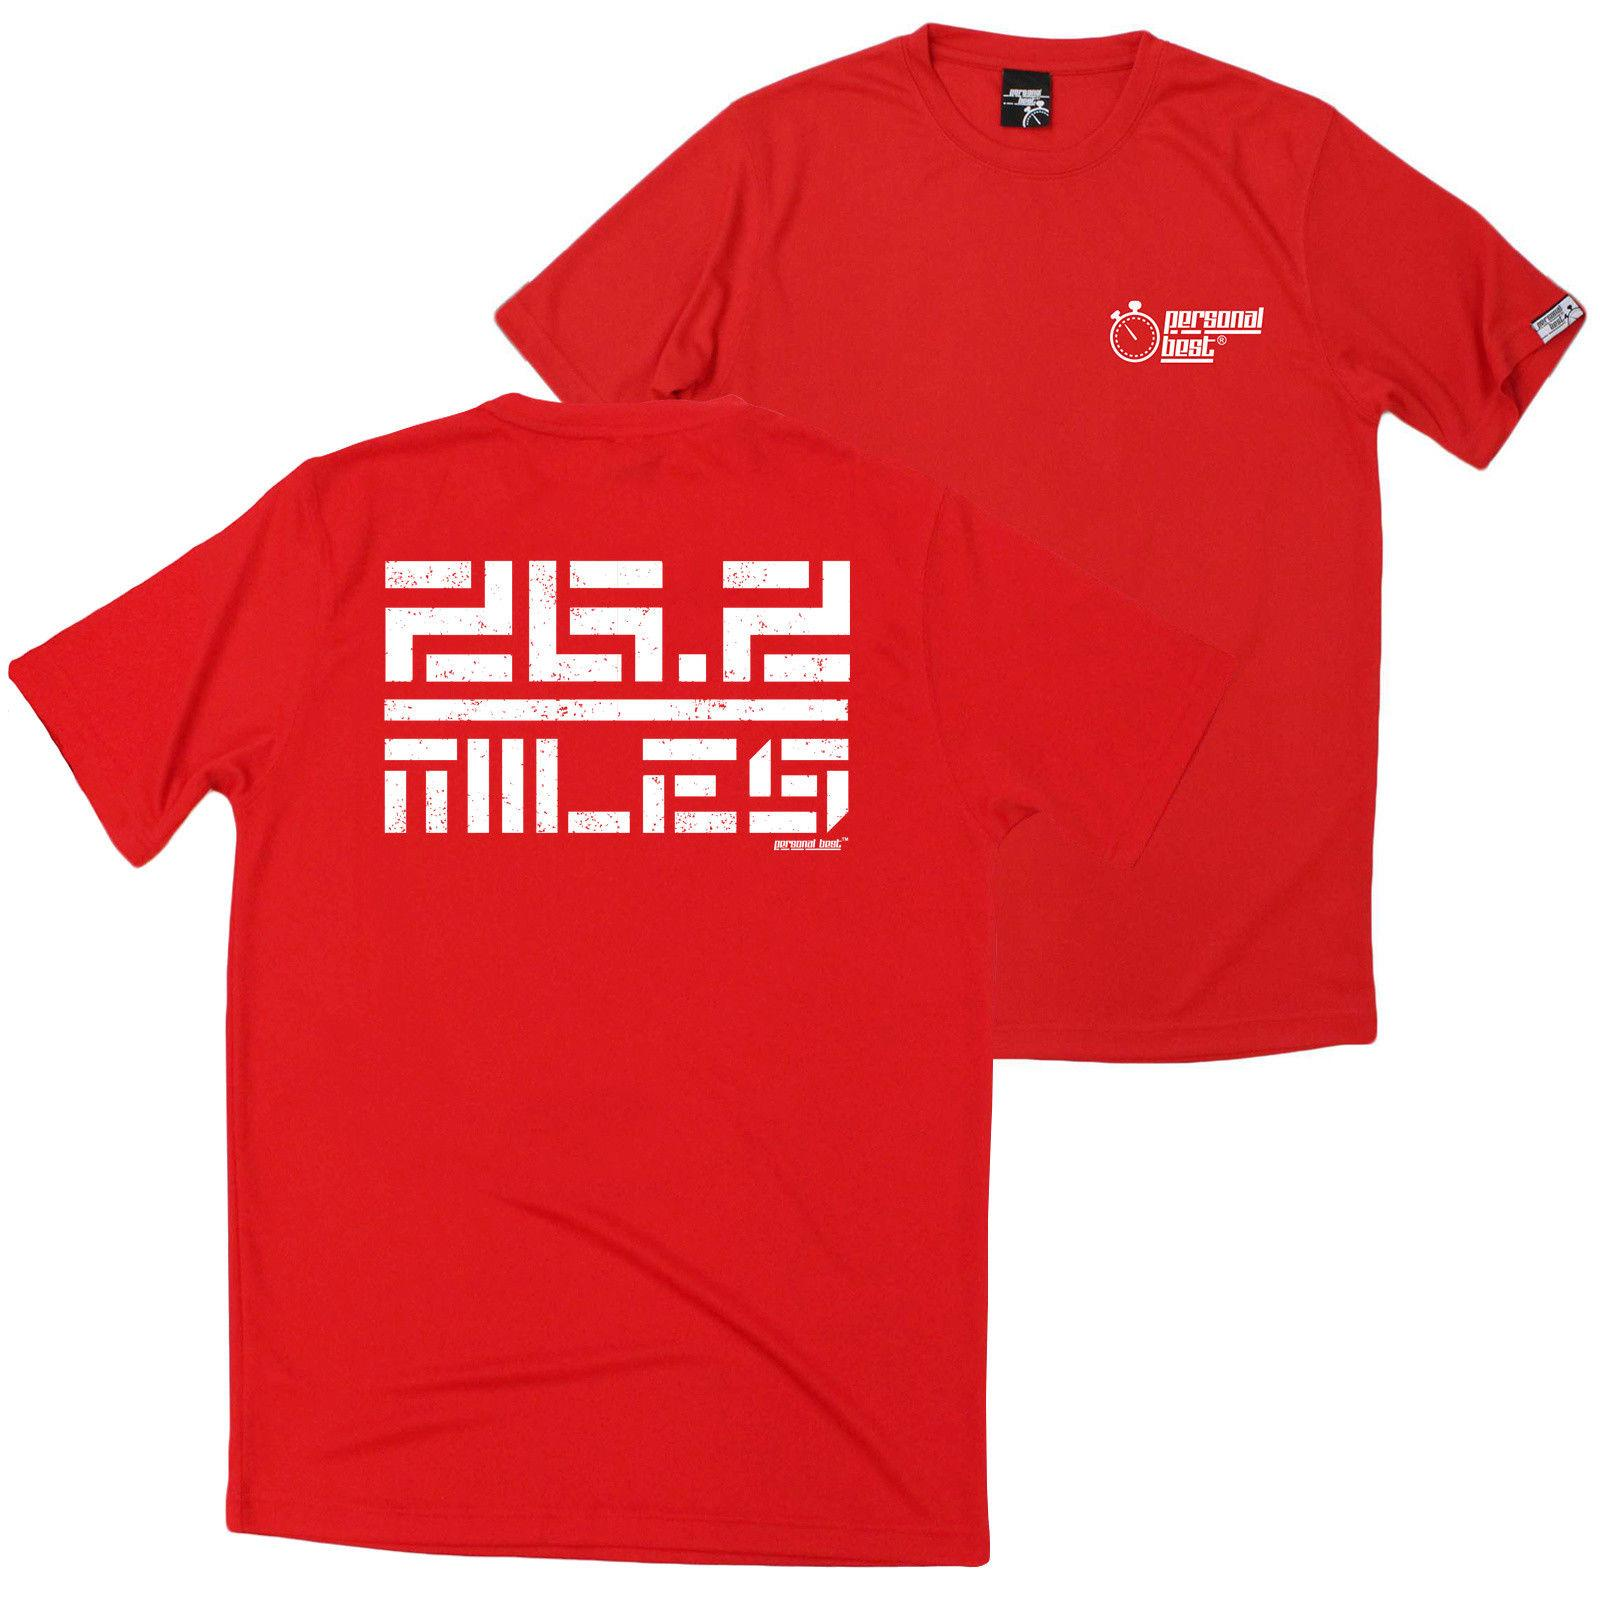 FB Running Tee 26 Miles Novelty Birthday Christmas Dry Fit Performance T Shirt Brand Shirts Jeans Print Classic Quality High Online